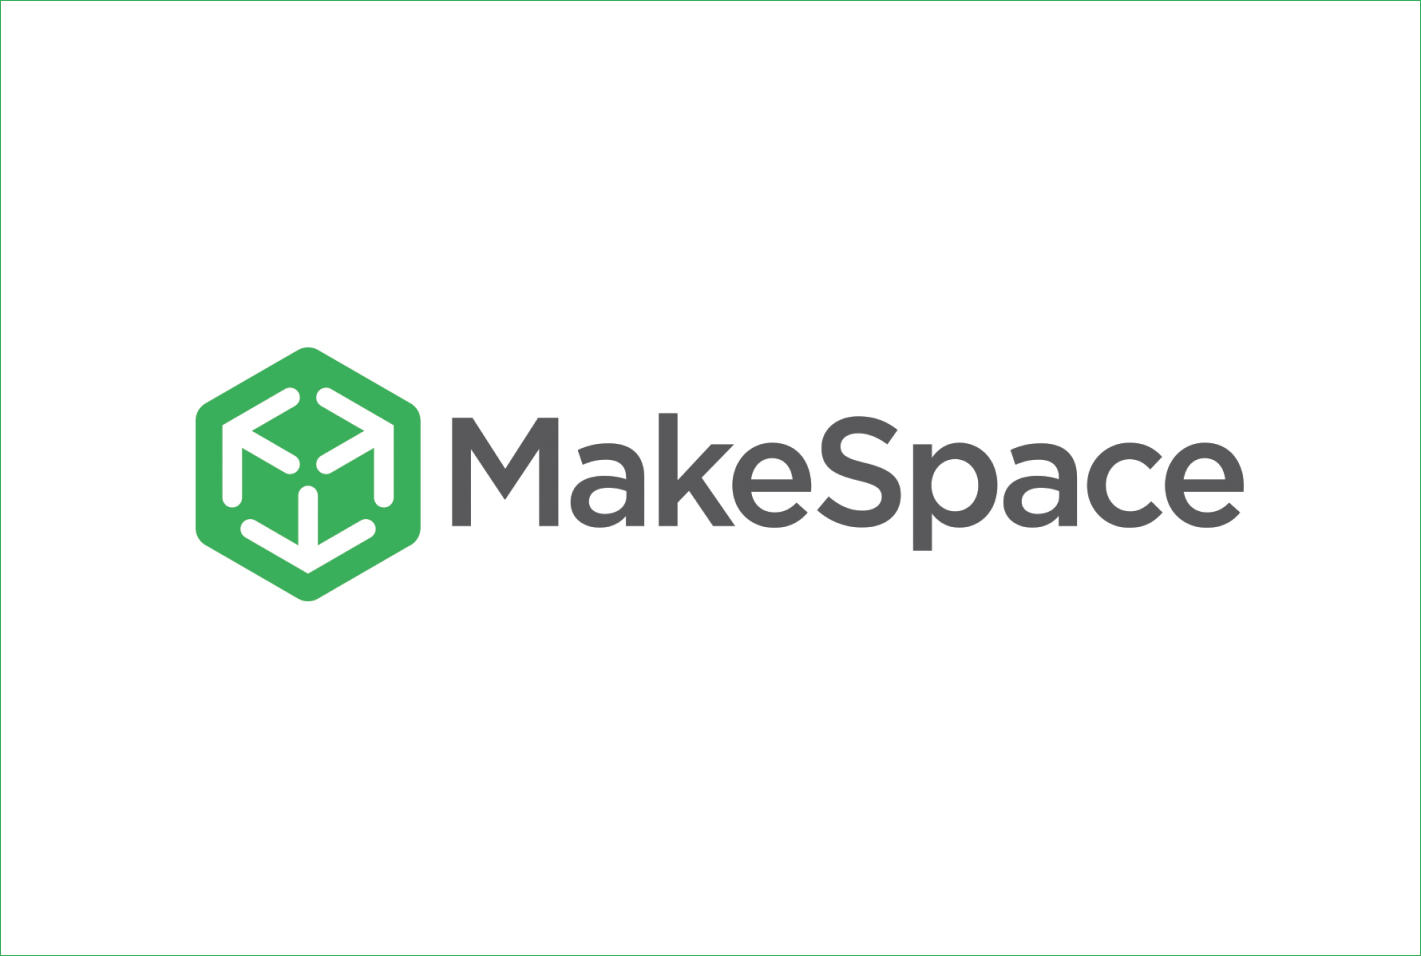 Makespace-Mar-18-2021-01-24-09-79-PM